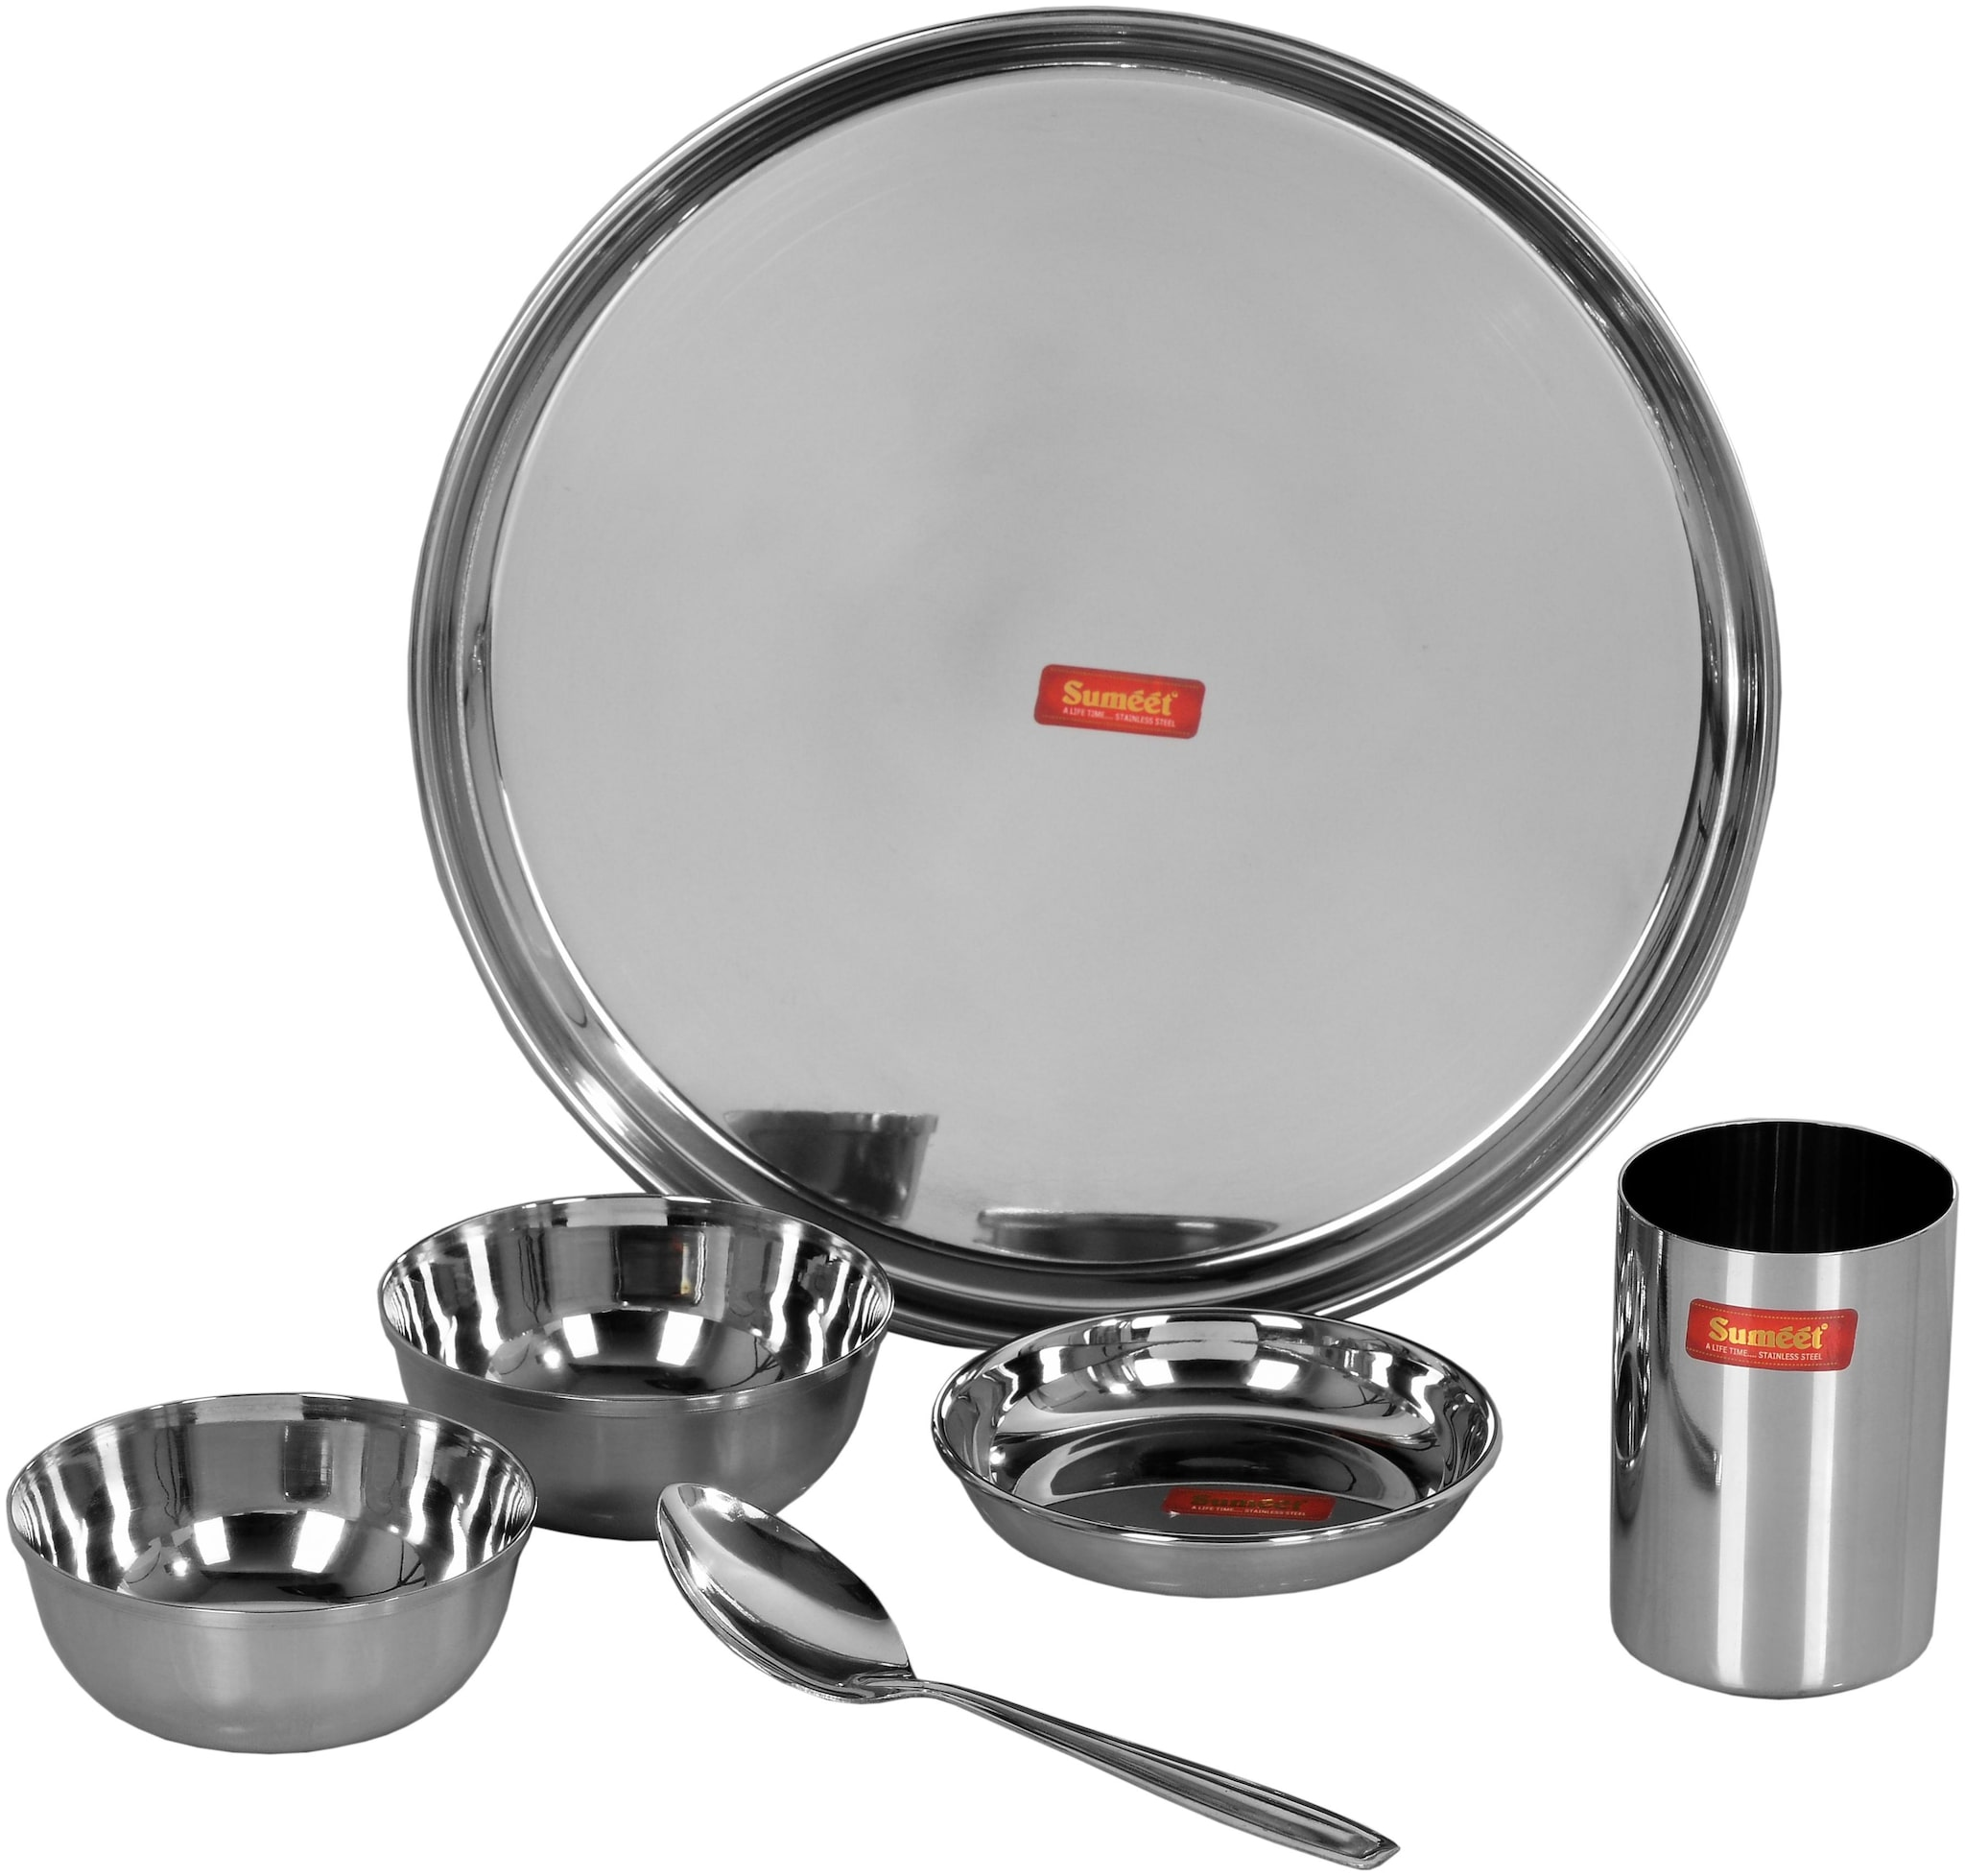 Sumeet Stainless steel Dinner Sets   Set of 6 , Silver